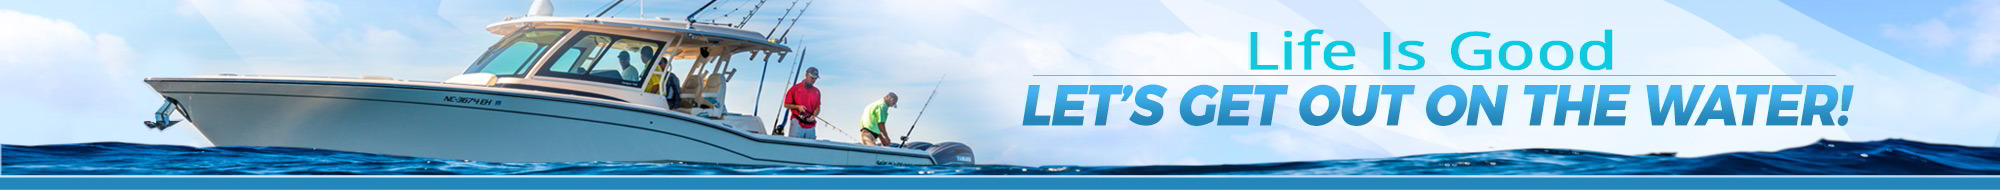 Ingman Marine - Life Is Good, Let's Get Back On The Water!